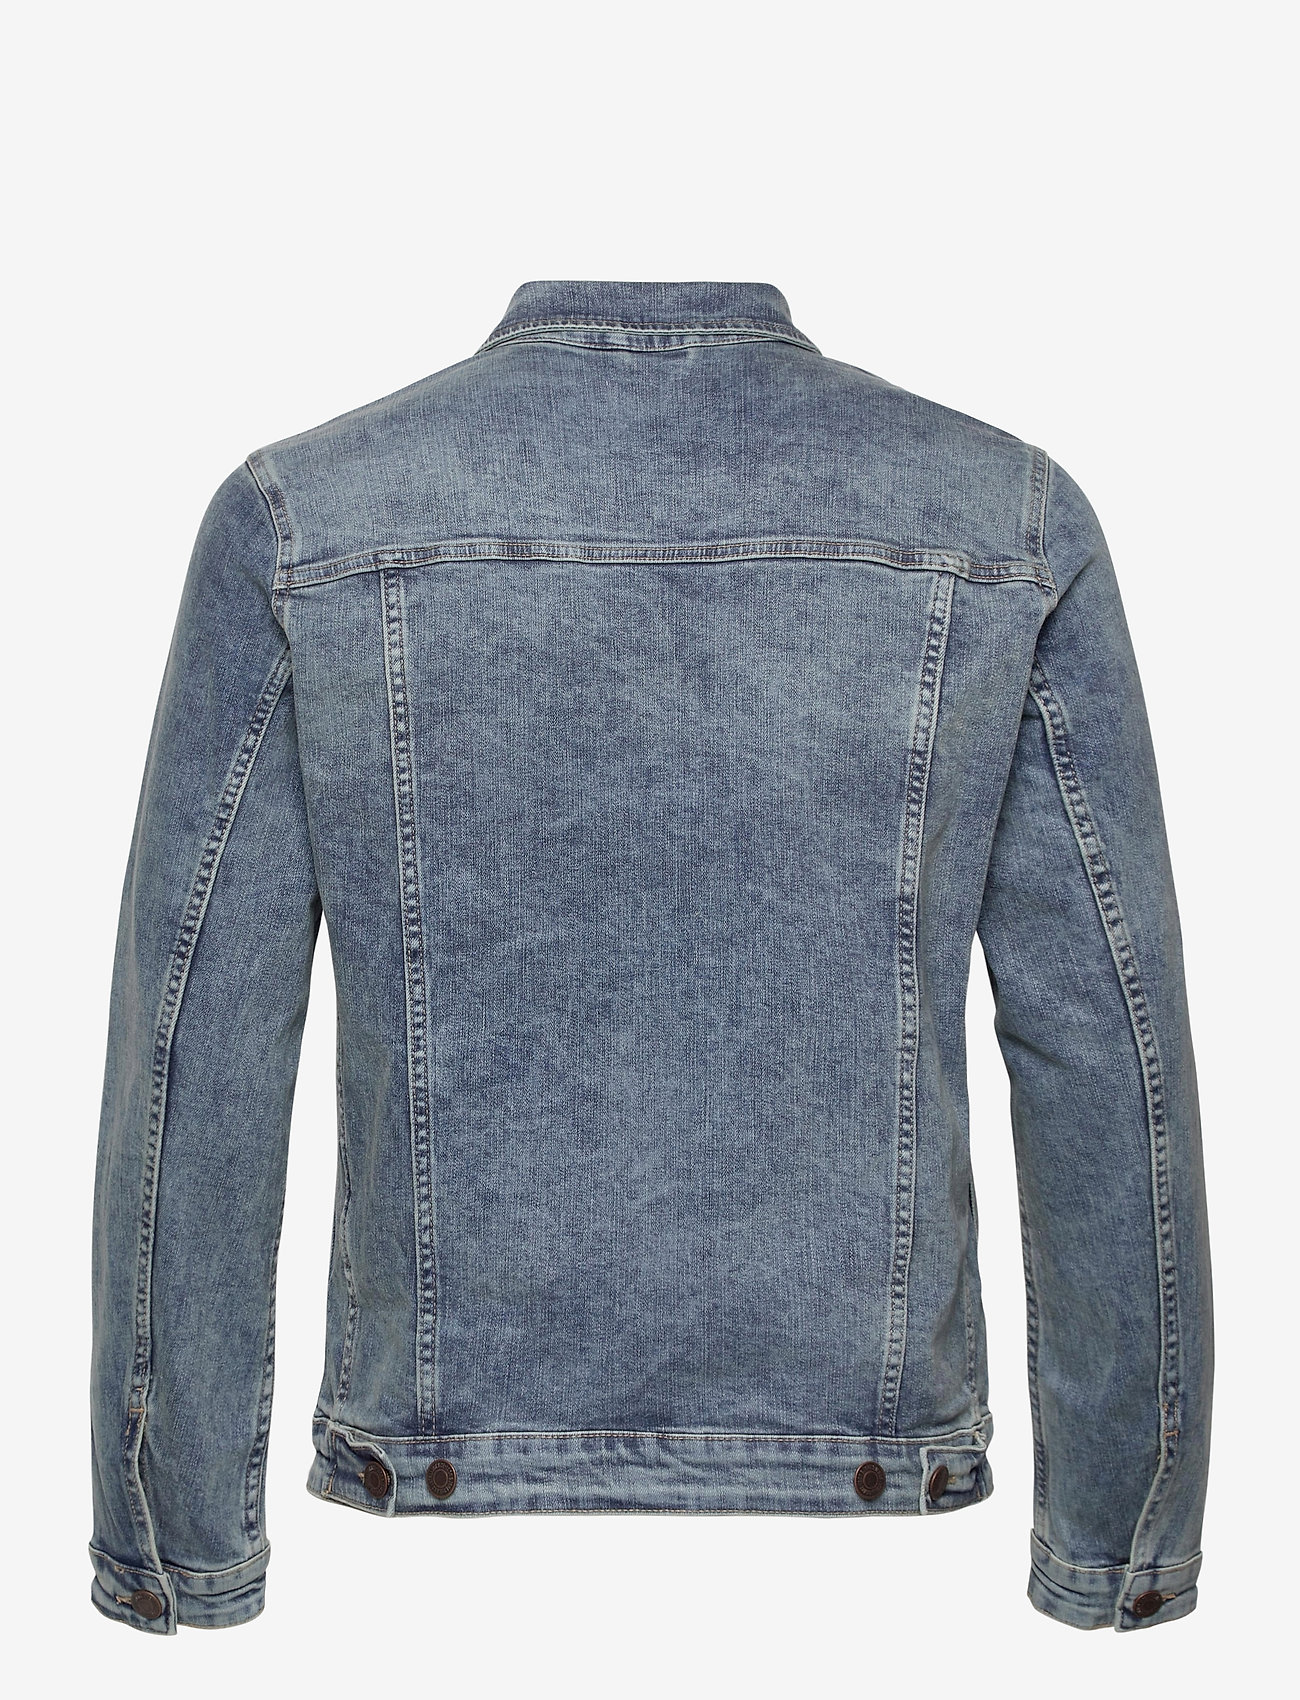 Jack & Jones - JJIALVIN JJJACKET SA 002 NOOS - farkkutakit - blue denim - 1